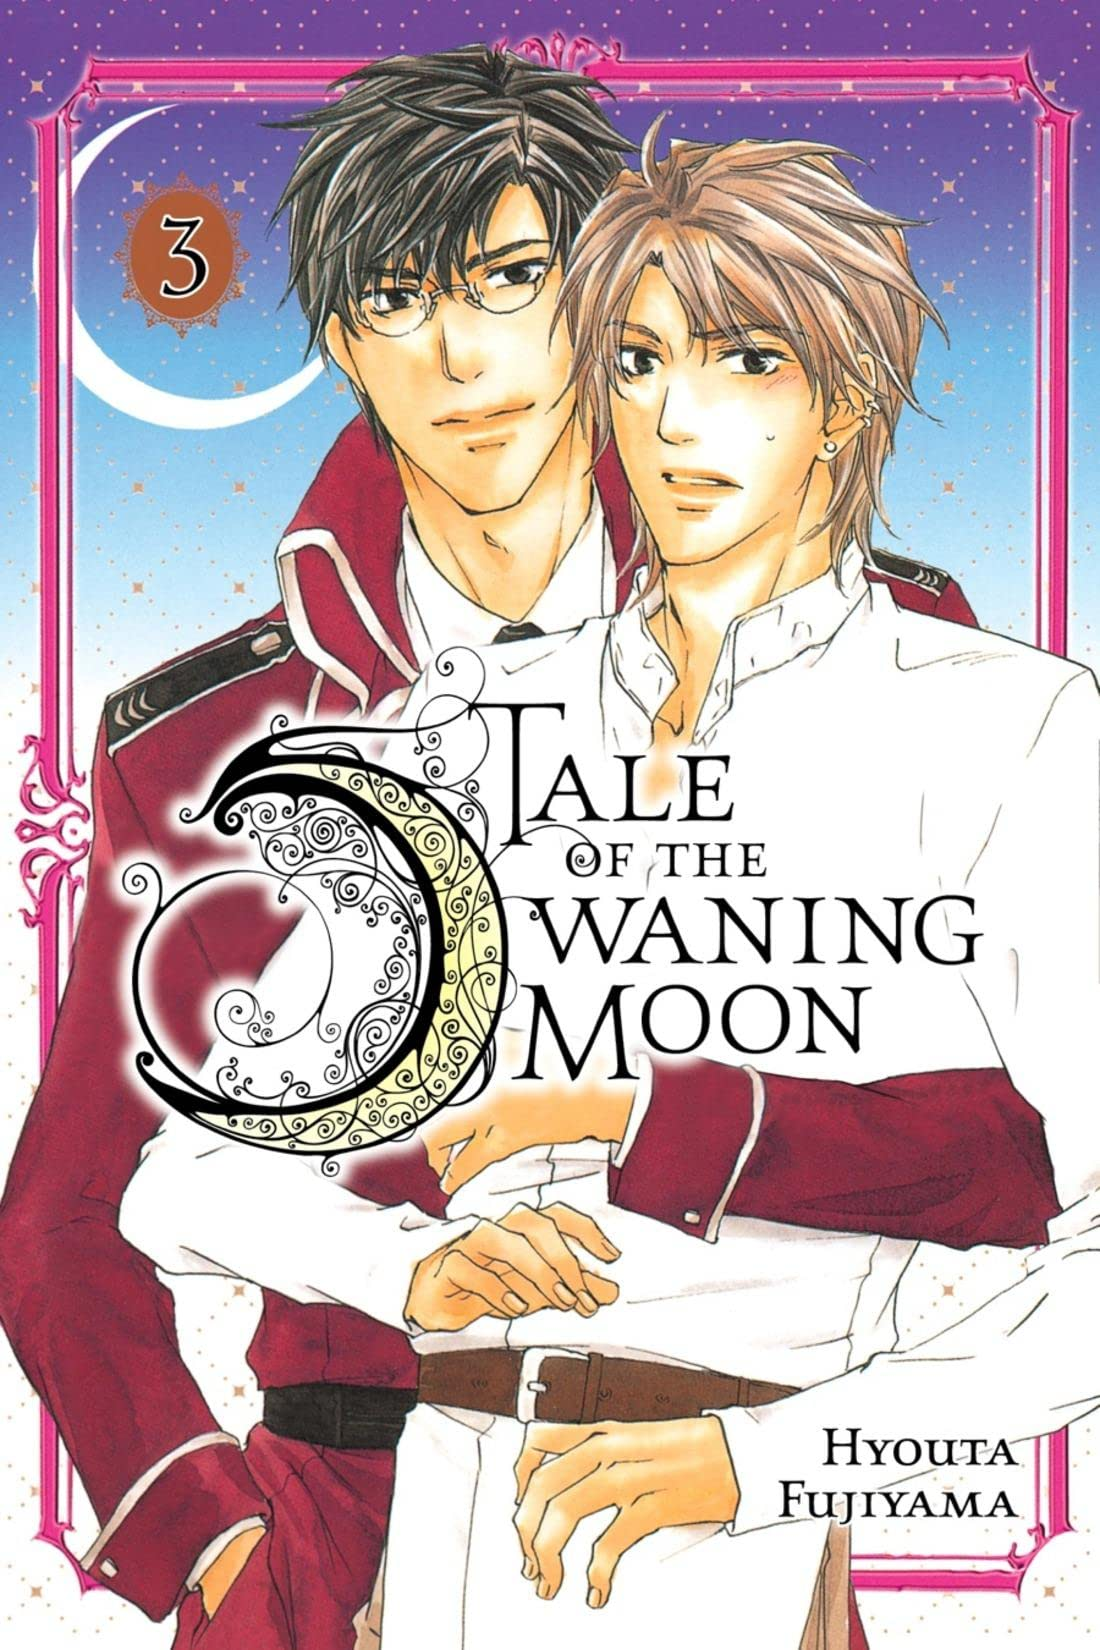 Tale of the Waning Moon Vol. 3